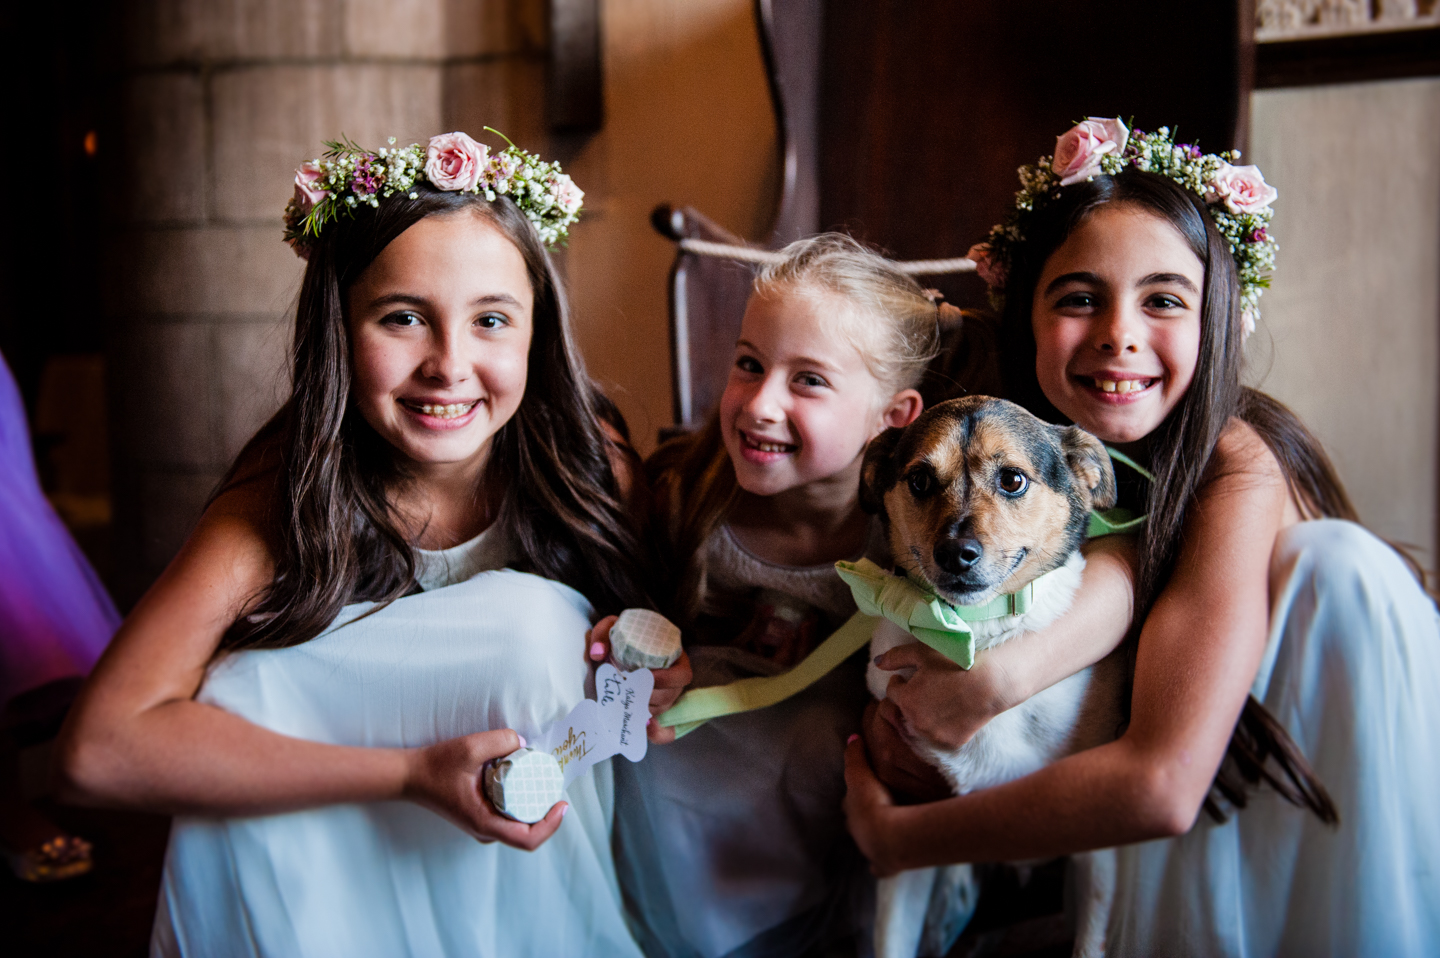 adorable flowers girls and the bride and grooms dog  smiling